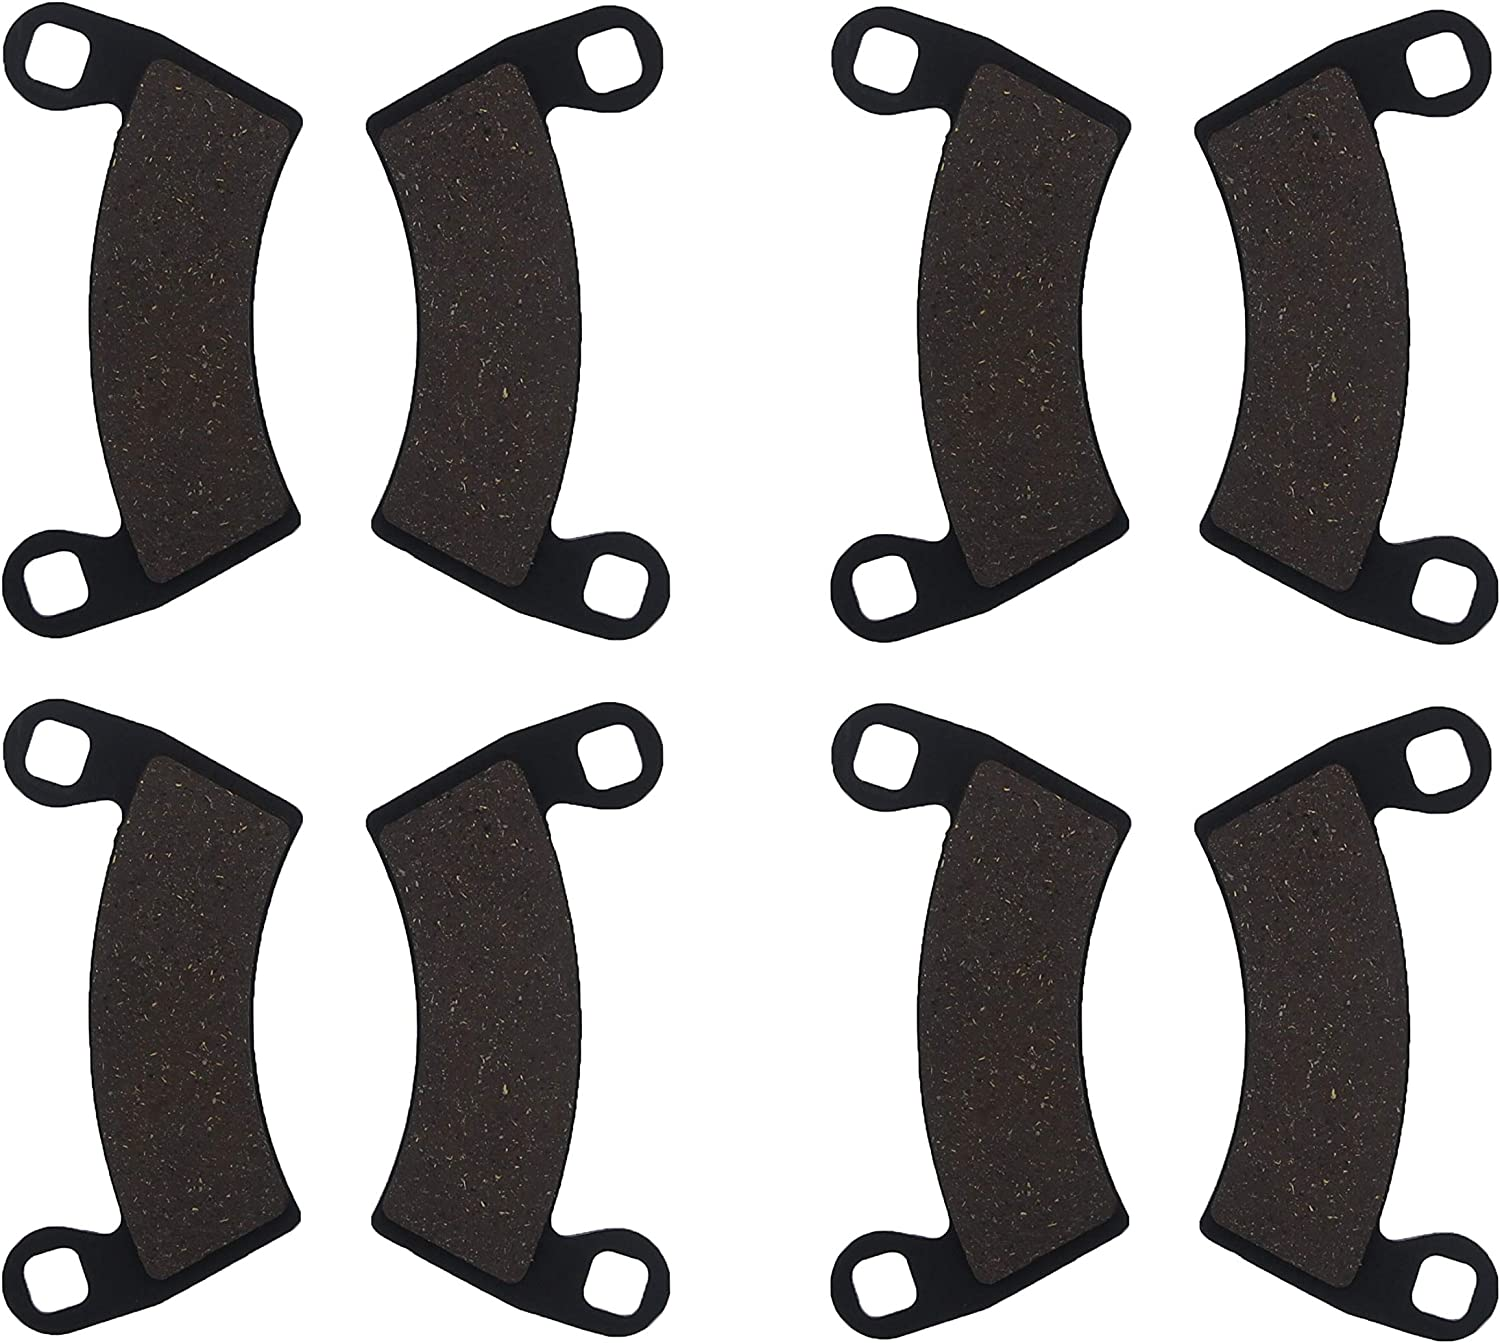 Front Rear Brake Pads For Polaris Ranger Razor RZR XP 900 Free Shipping Brakes